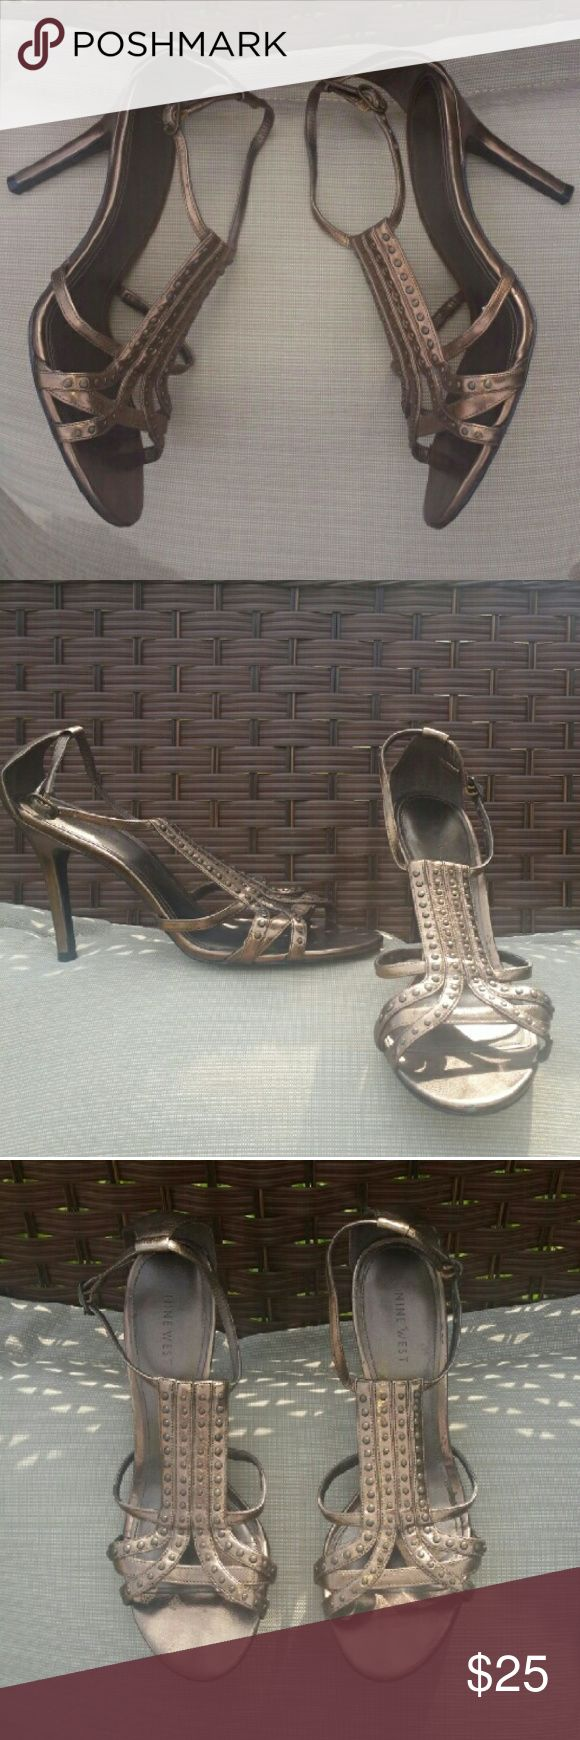 Bronze Strappy High Heel Sandals Bronze metallic strappy high heel sandals. Size 8 M. 4 inch heel. Brand: Nine West (Style: Sizzle). Adjustable buckle strap and heel strap for comfort fit. Great condition. Wear with dresses or jeans. Looks great with red, black, navy, denim and white. Nine West Shoes Heels